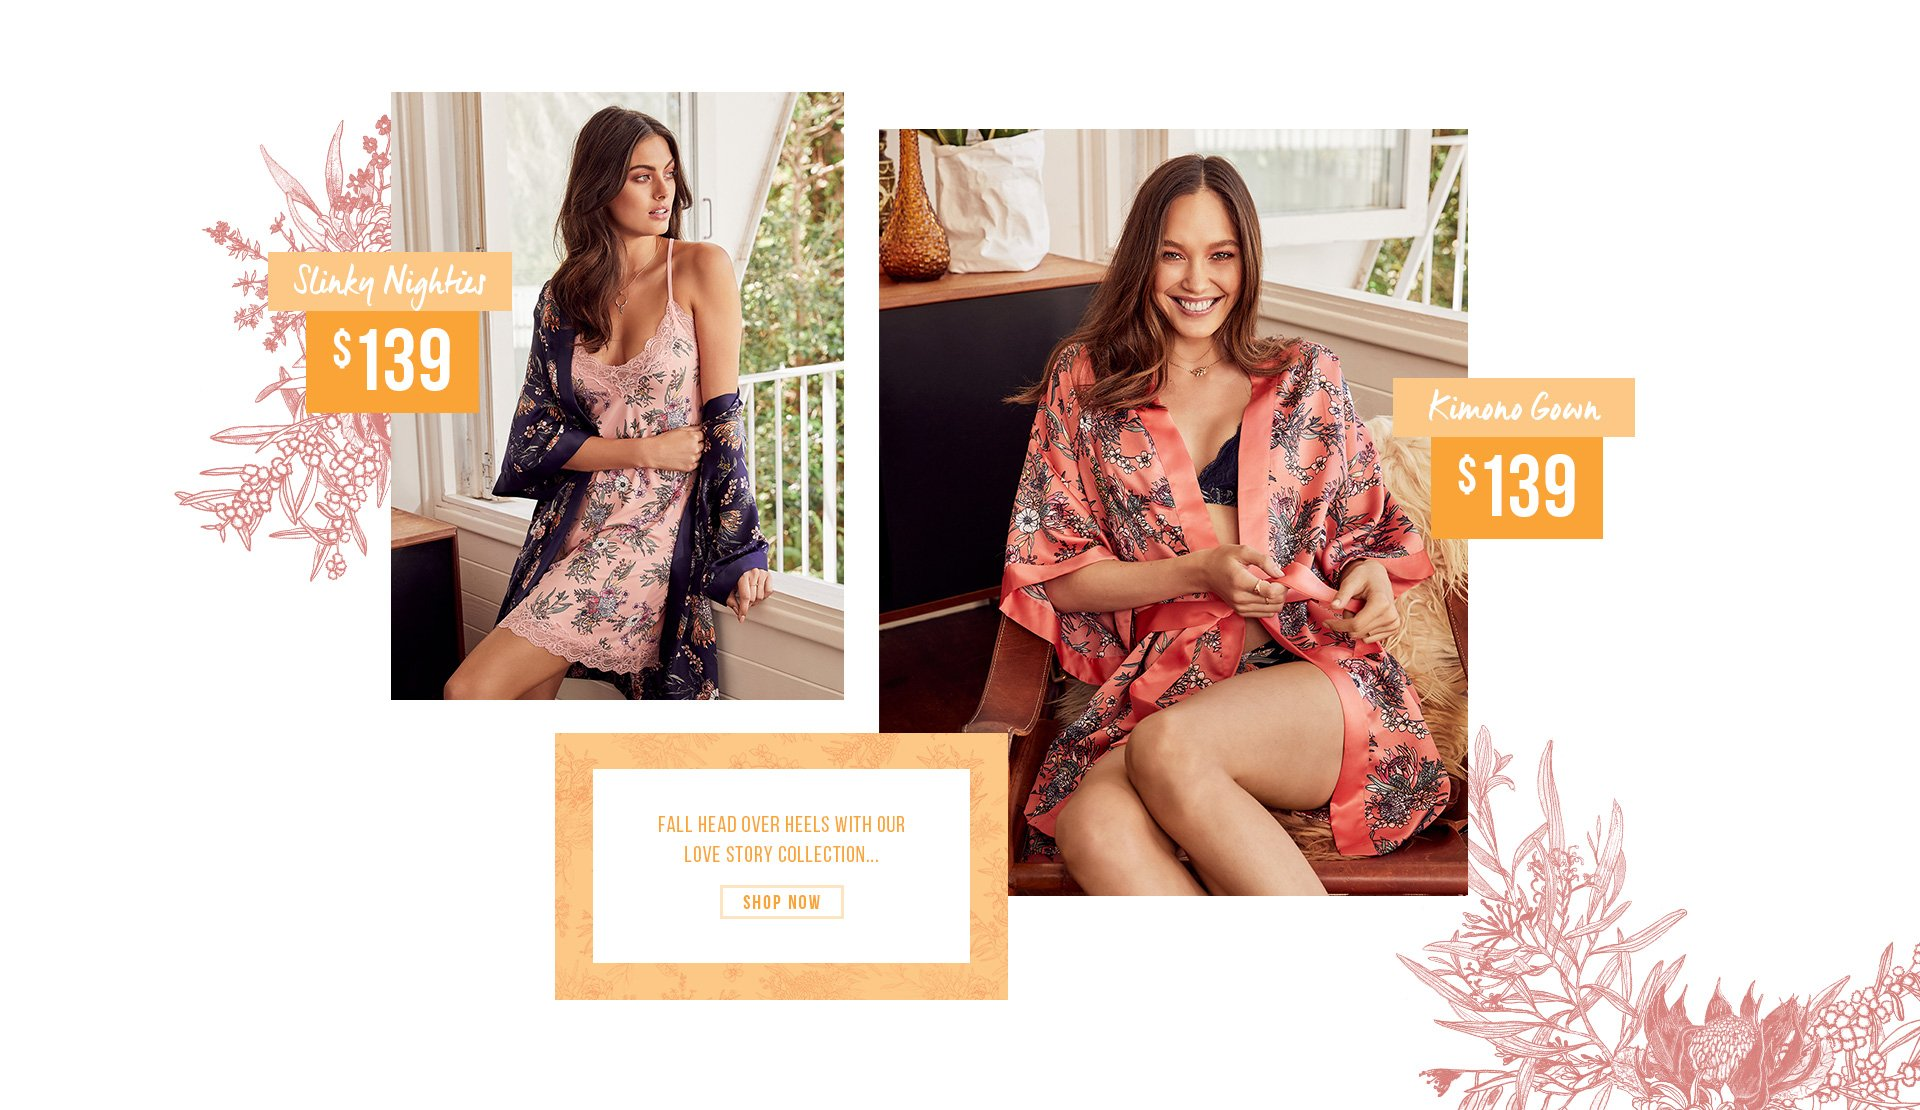 Fall Head Over Heels With Our Love Story Collection Slinky Nighties | Kimono Gown